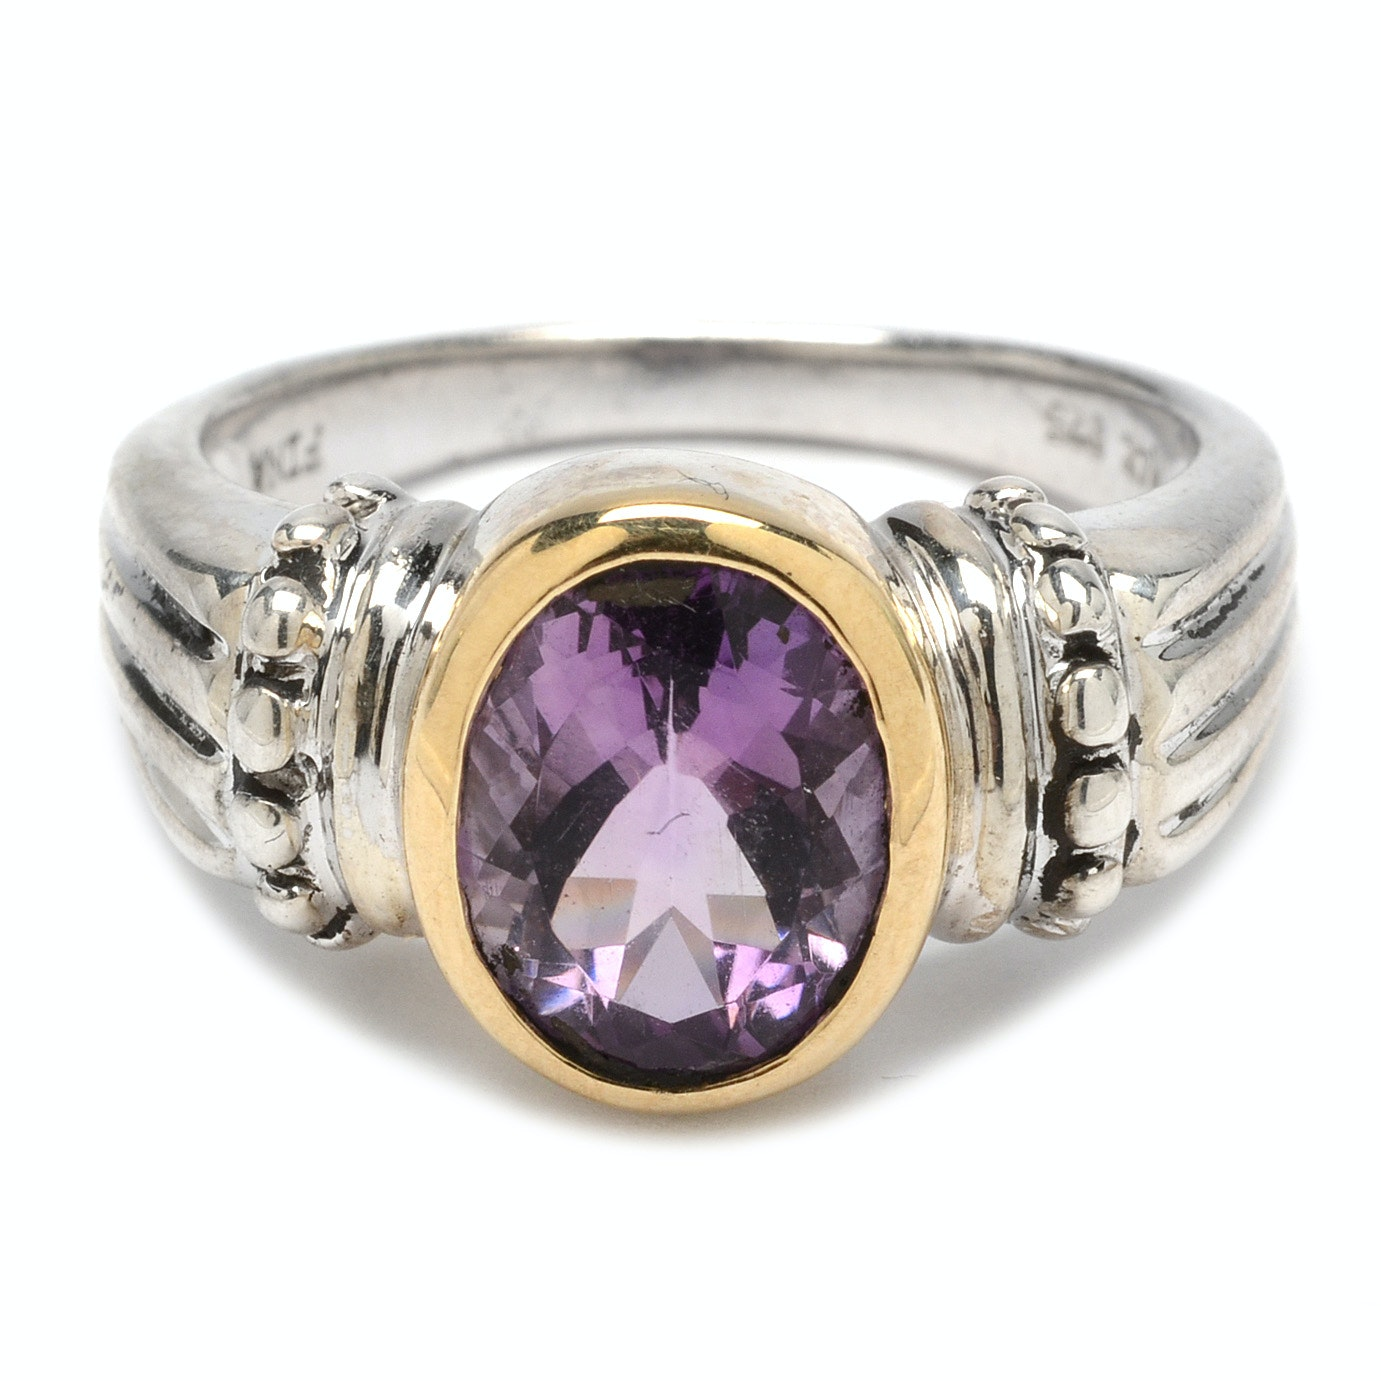 Michael C. Fina Sterling Silver Amethyst Ring With 14K Yellow Gold Accents